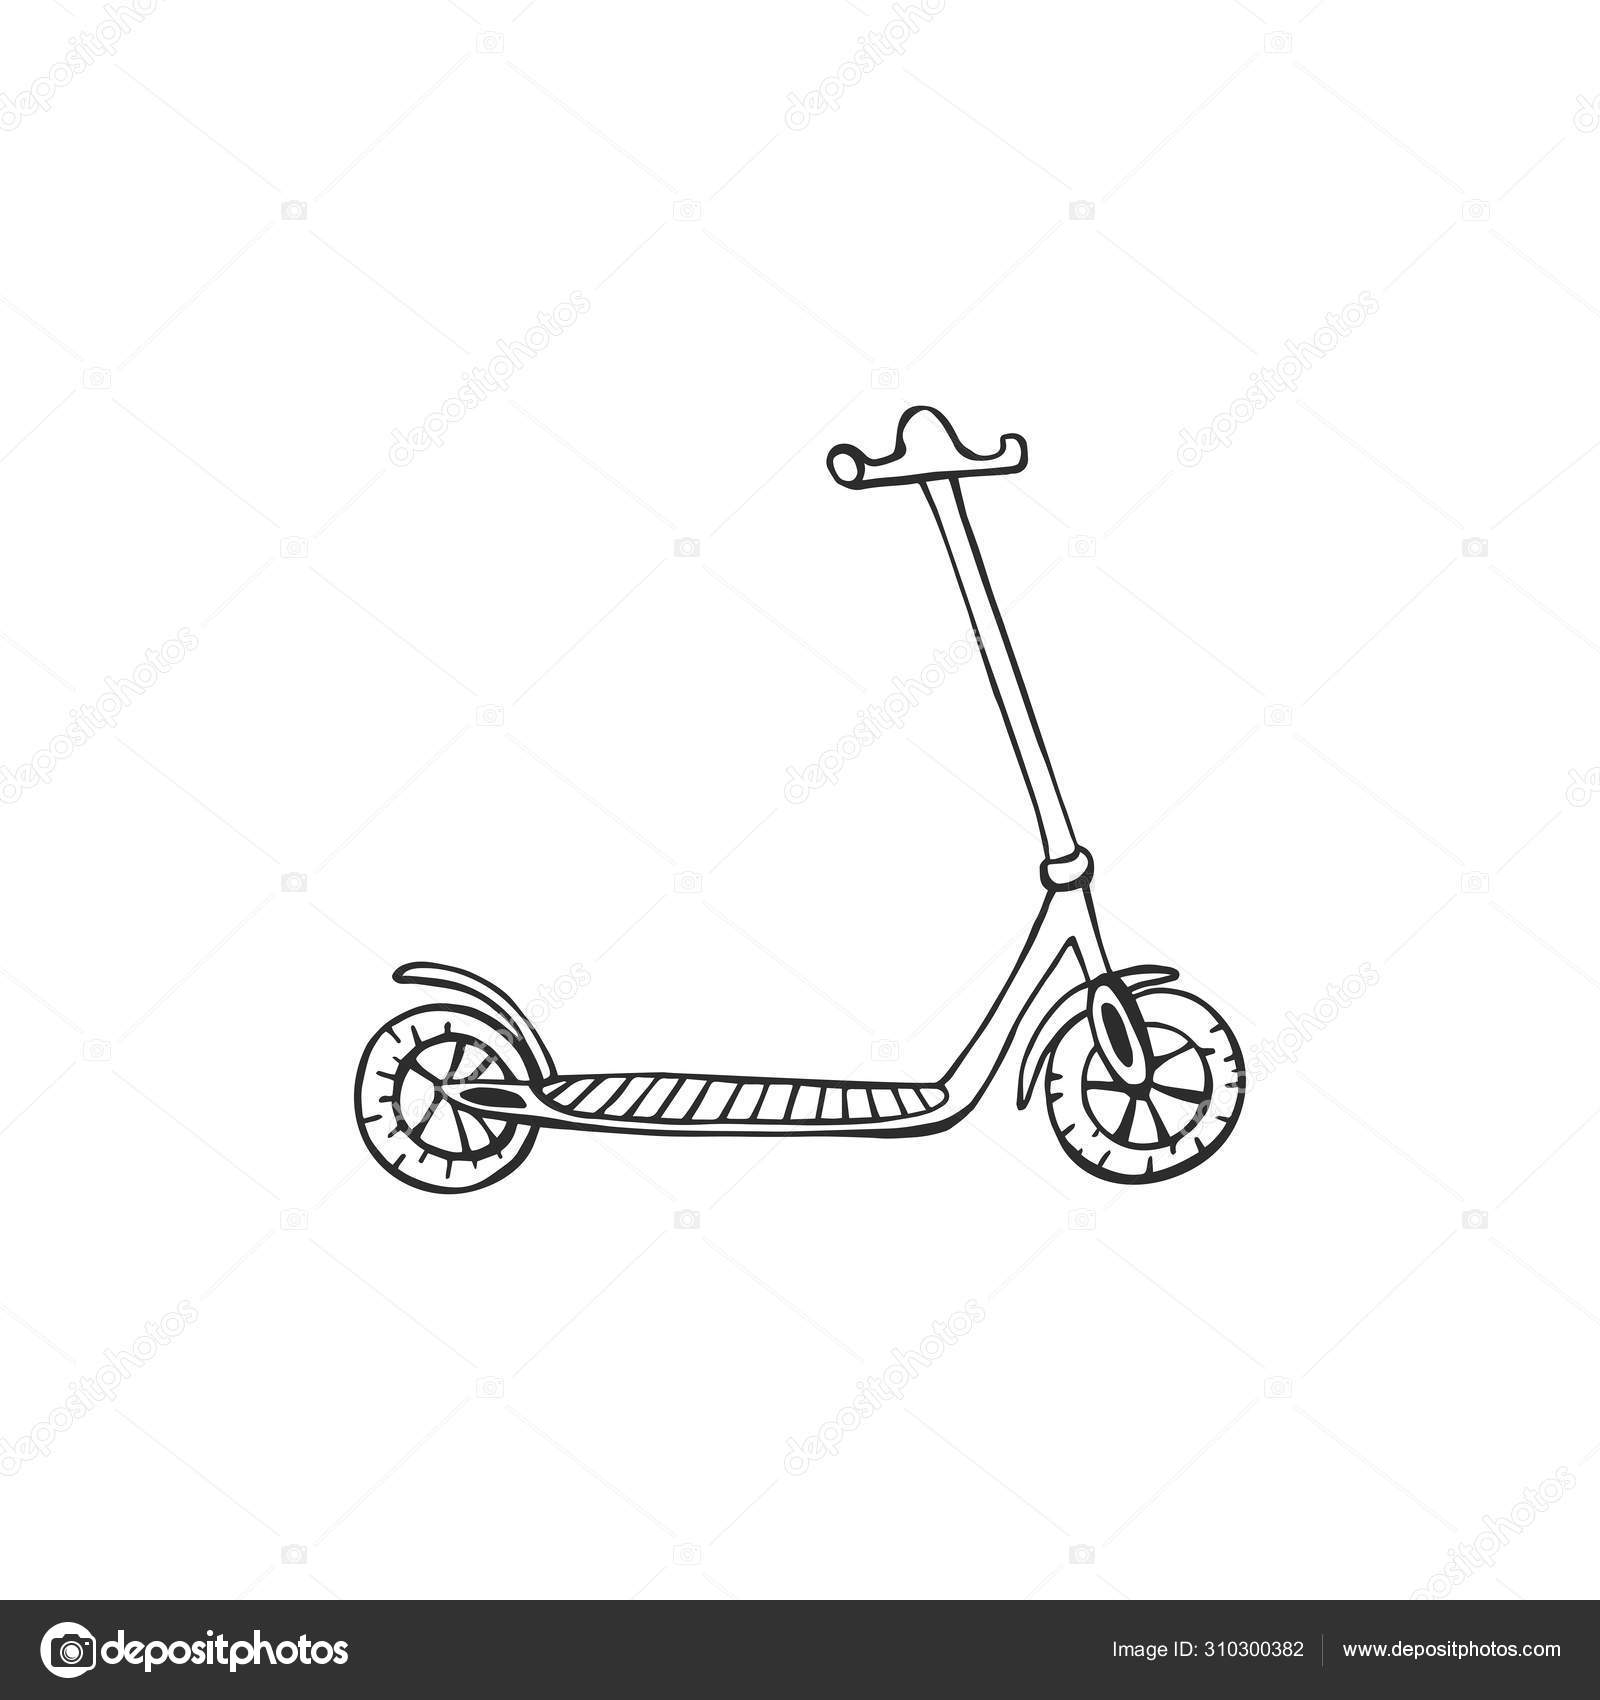 Cartoon Electric Scooter Eps10 Vector Illustration Hand Drawing Art Line Stock Vector C M 310300382